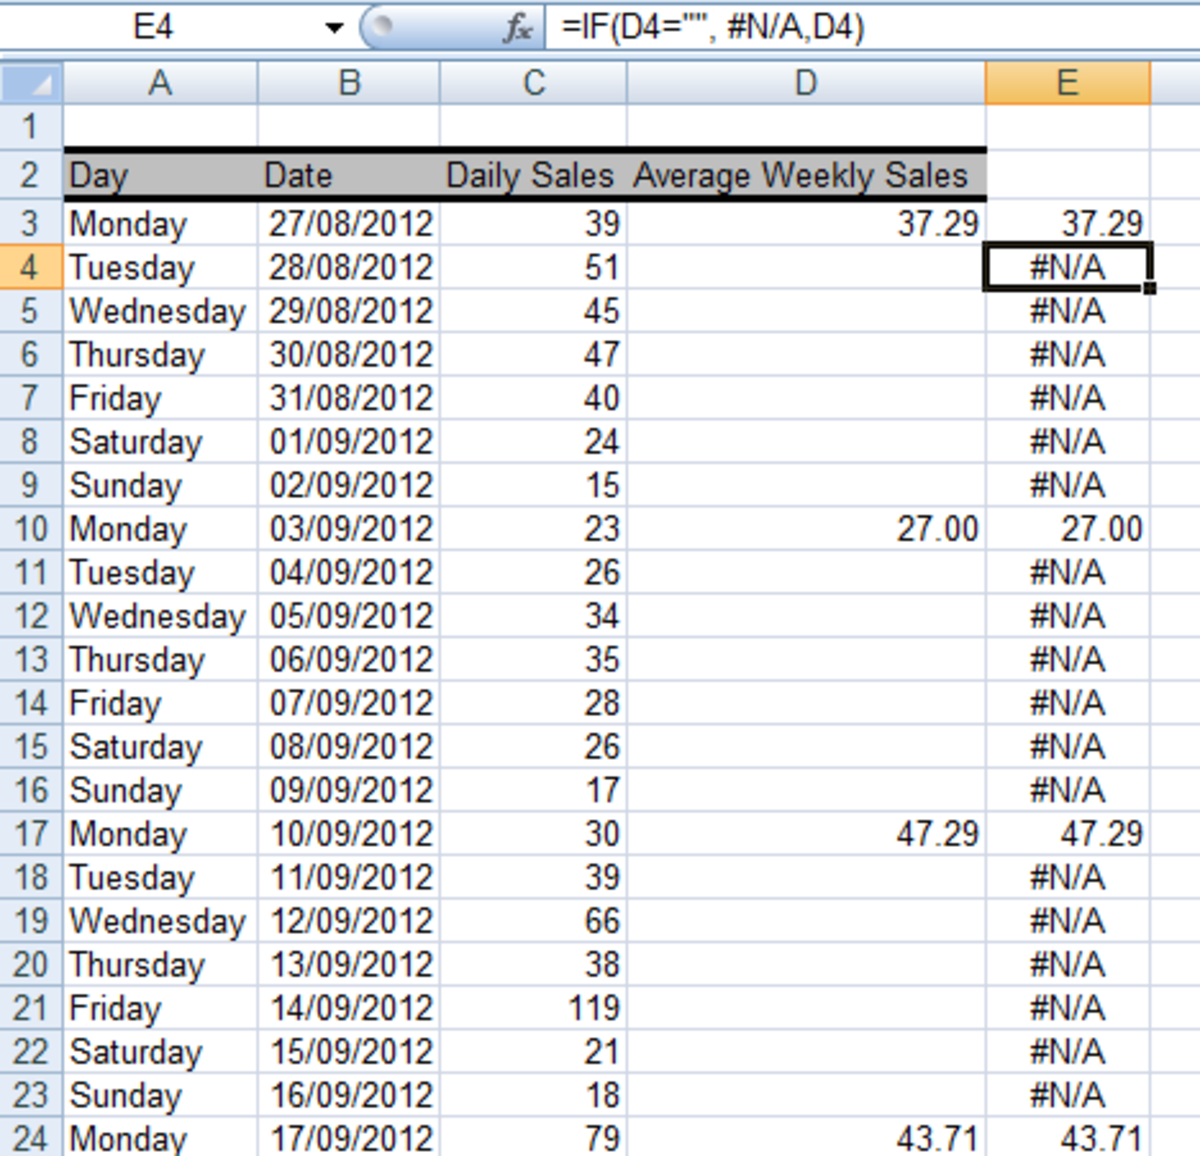 Ediblewildsus  Stunning How To Get Excel  And  To Ignore Empty Cells In A Chart Or  With Heavenly Using The If Function In A Formula To Convert Empty Cells To Na With Endearing Excel Pivot Chart Also Subtract Function In Excel In Addition Change Axis In Excel And Synonym For Excel As Well As How To Do A Drop Down List In Excel Additionally How To Plot A Line Graph In Excel From Turbofuturecom With Ediblewildsus  Heavenly How To Get Excel  And  To Ignore Empty Cells In A Chart Or  With Endearing Using The If Function In A Formula To Convert Empty Cells To Na And Stunning Excel Pivot Chart Also Subtract Function In Excel In Addition Change Axis In Excel From Turbofuturecom